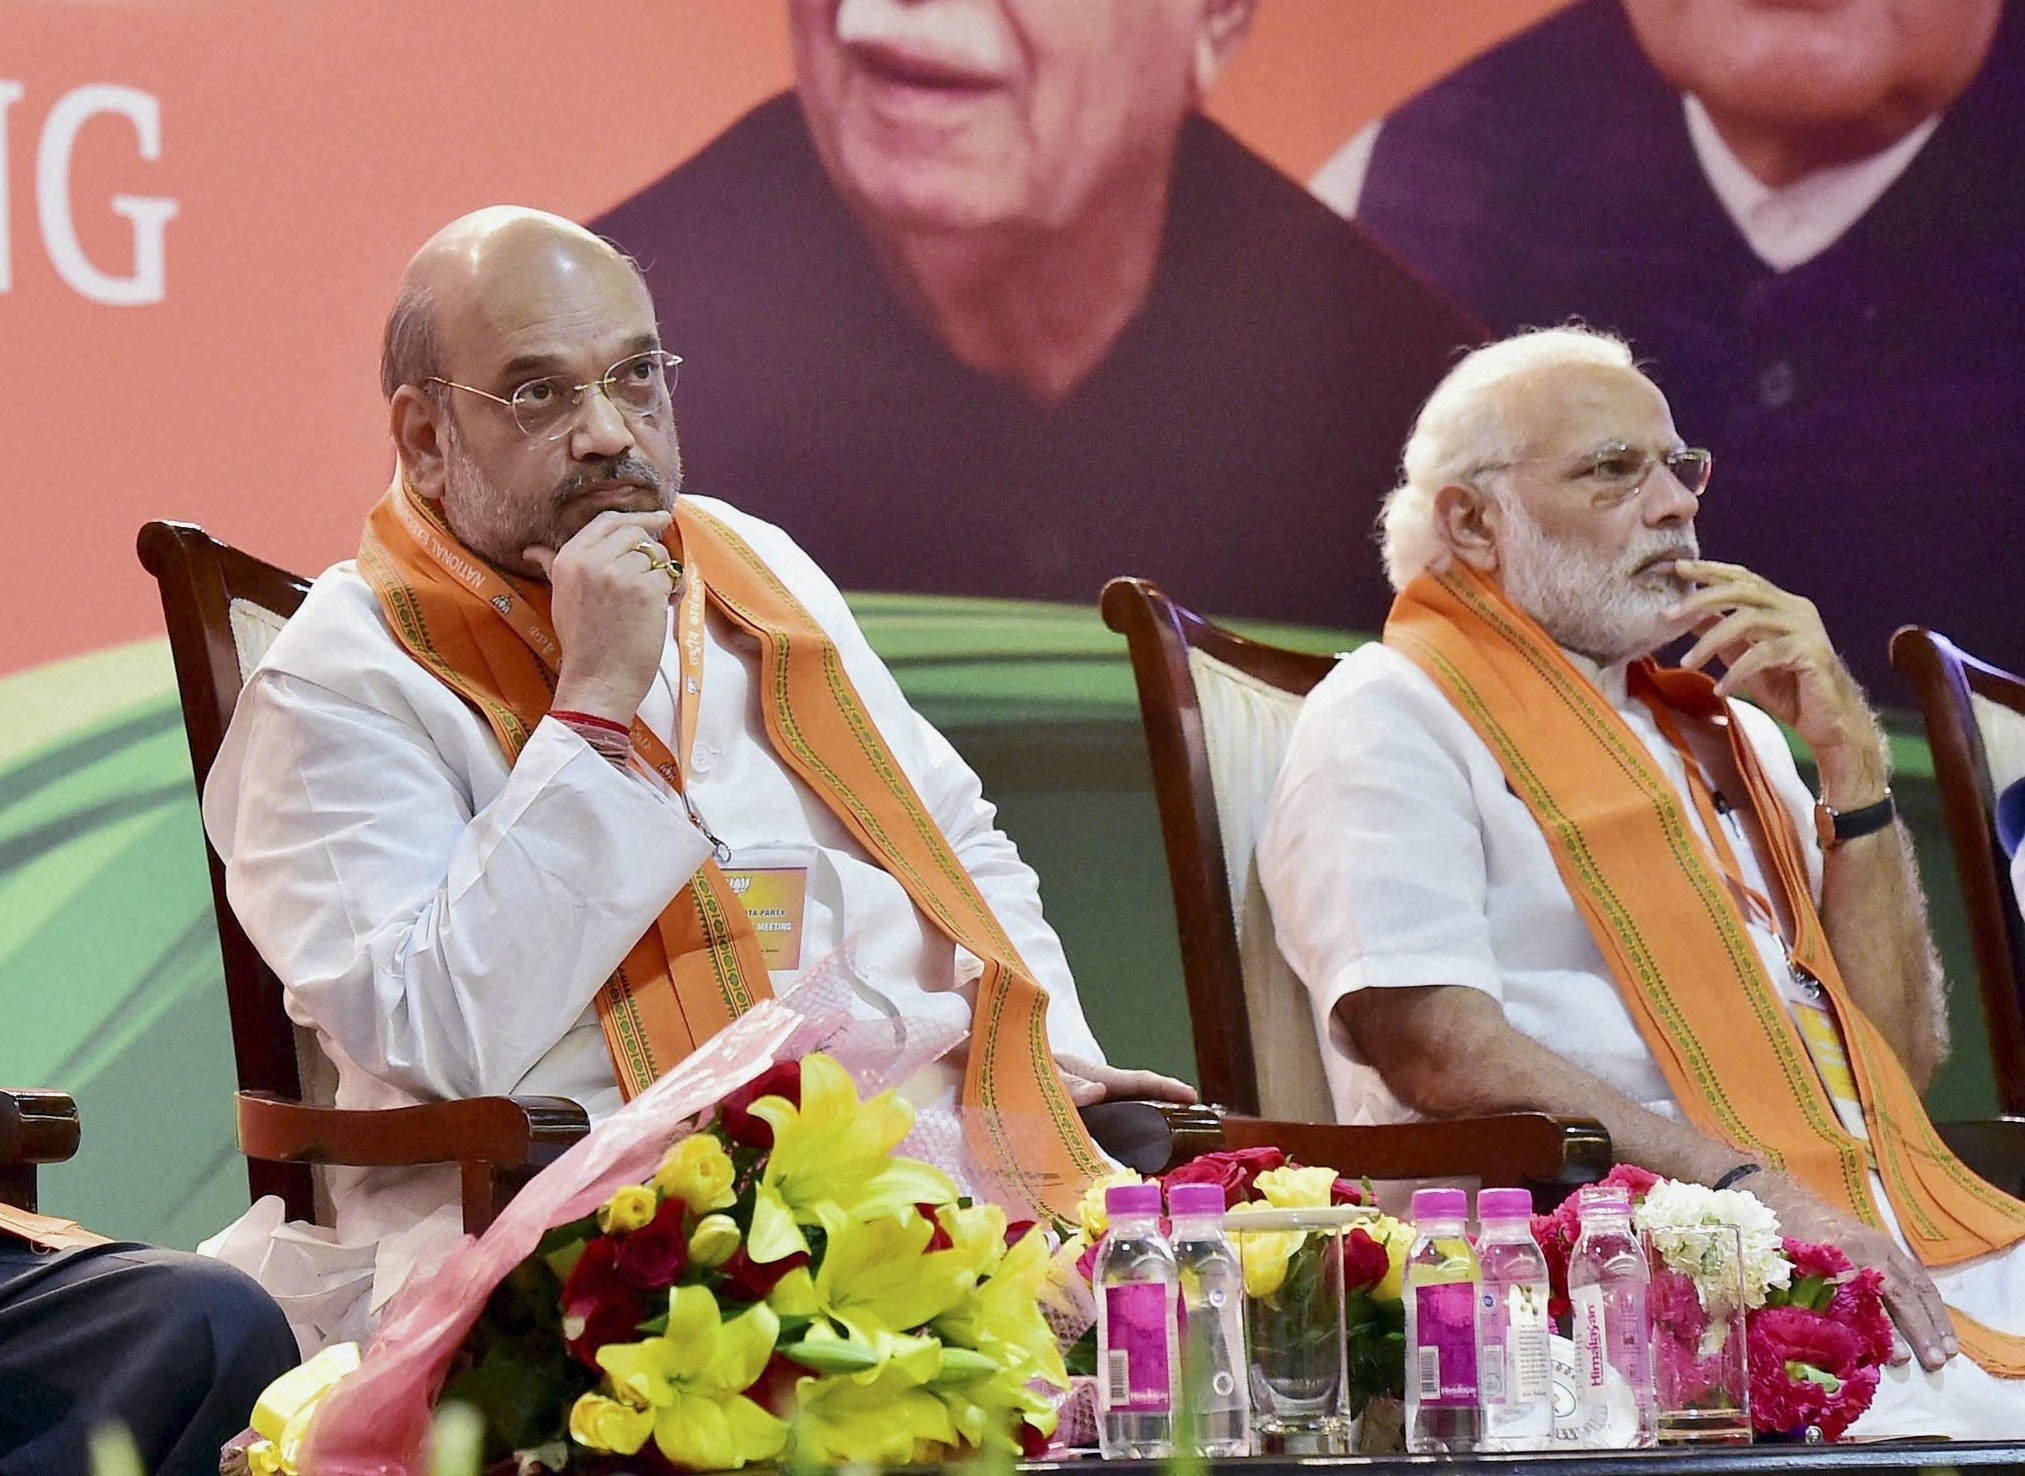 Prime Minister Narendra Modi and BJP president Amit Shah at the party's national executive meeting in Delhi in March. Credit: PTI